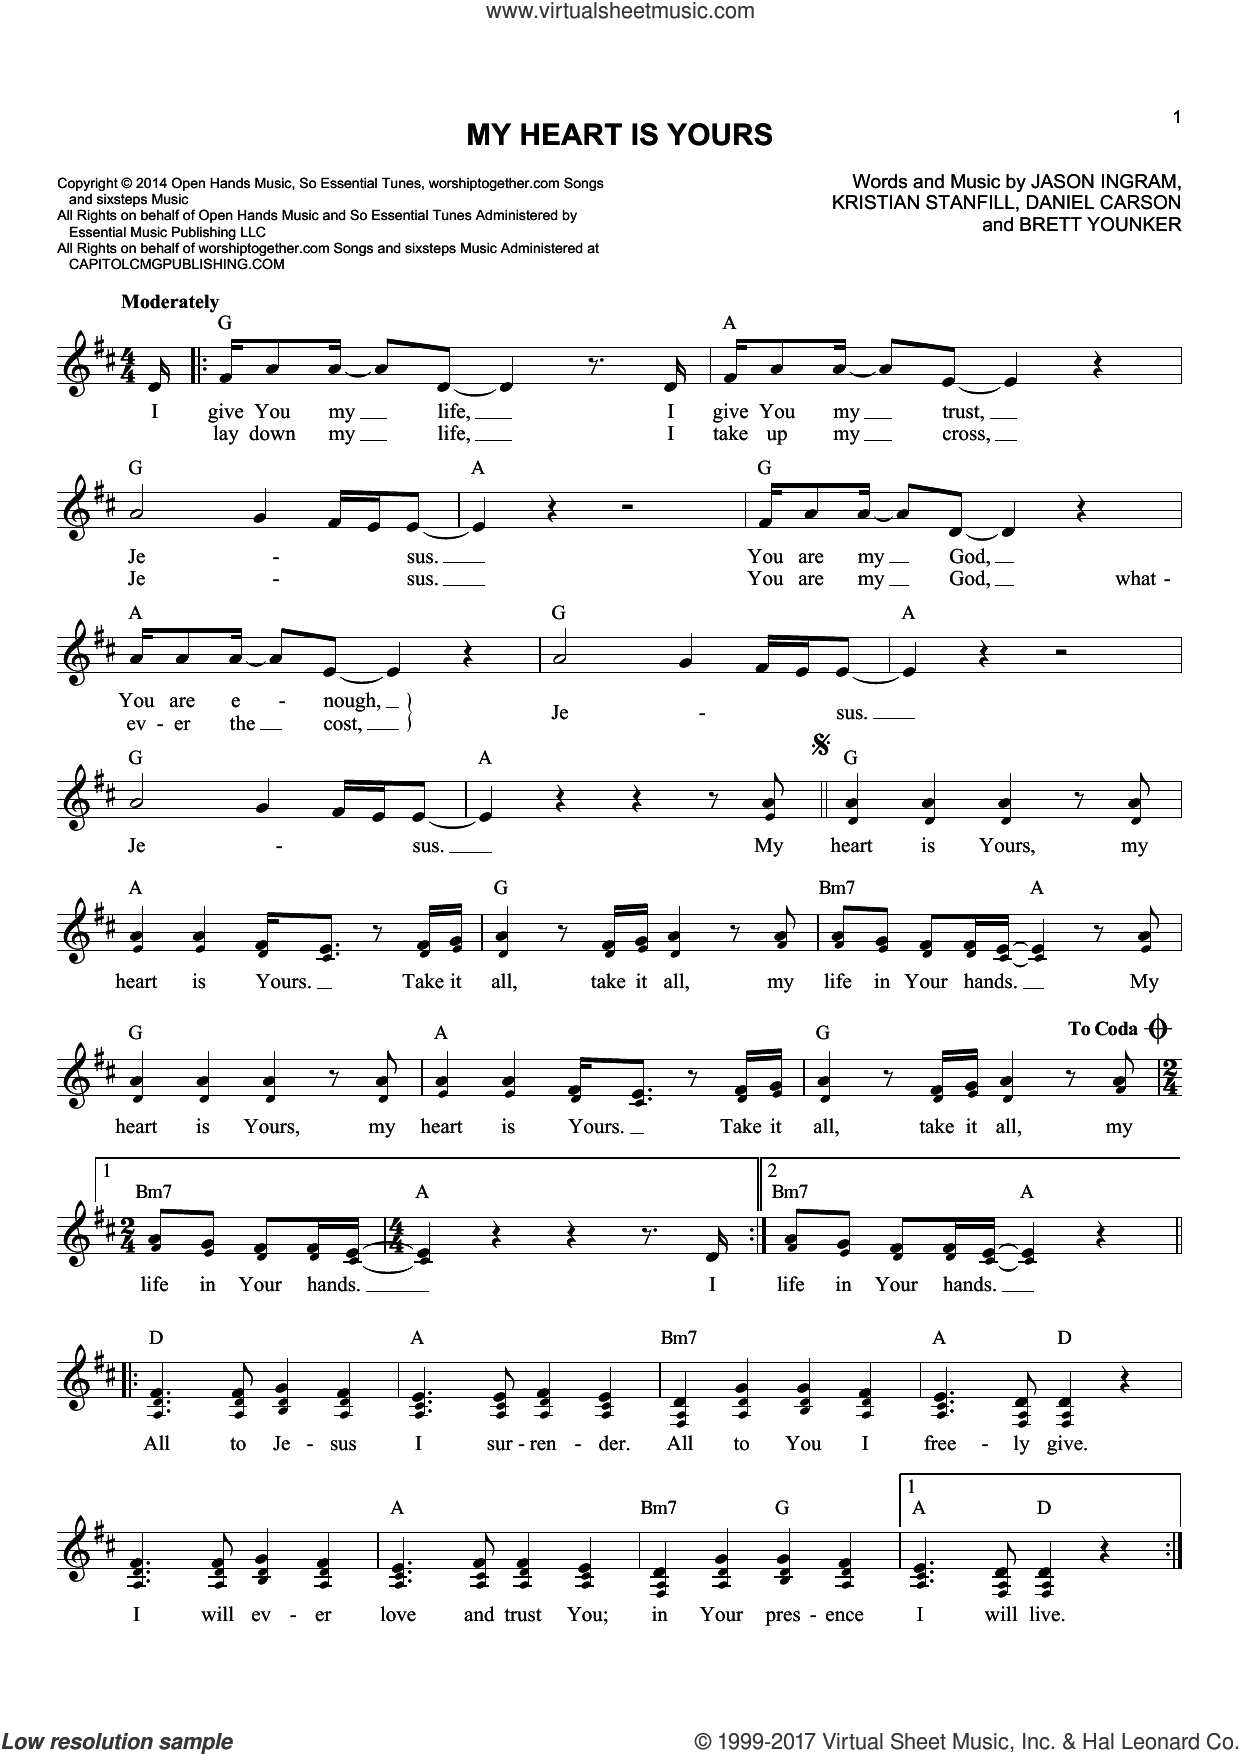 My Heart Is Yours sheet music for voice and other instruments (fake book) by Brett Younker, Daniel Carson, Jason Ingram and Kristian Stanfill, intermediate